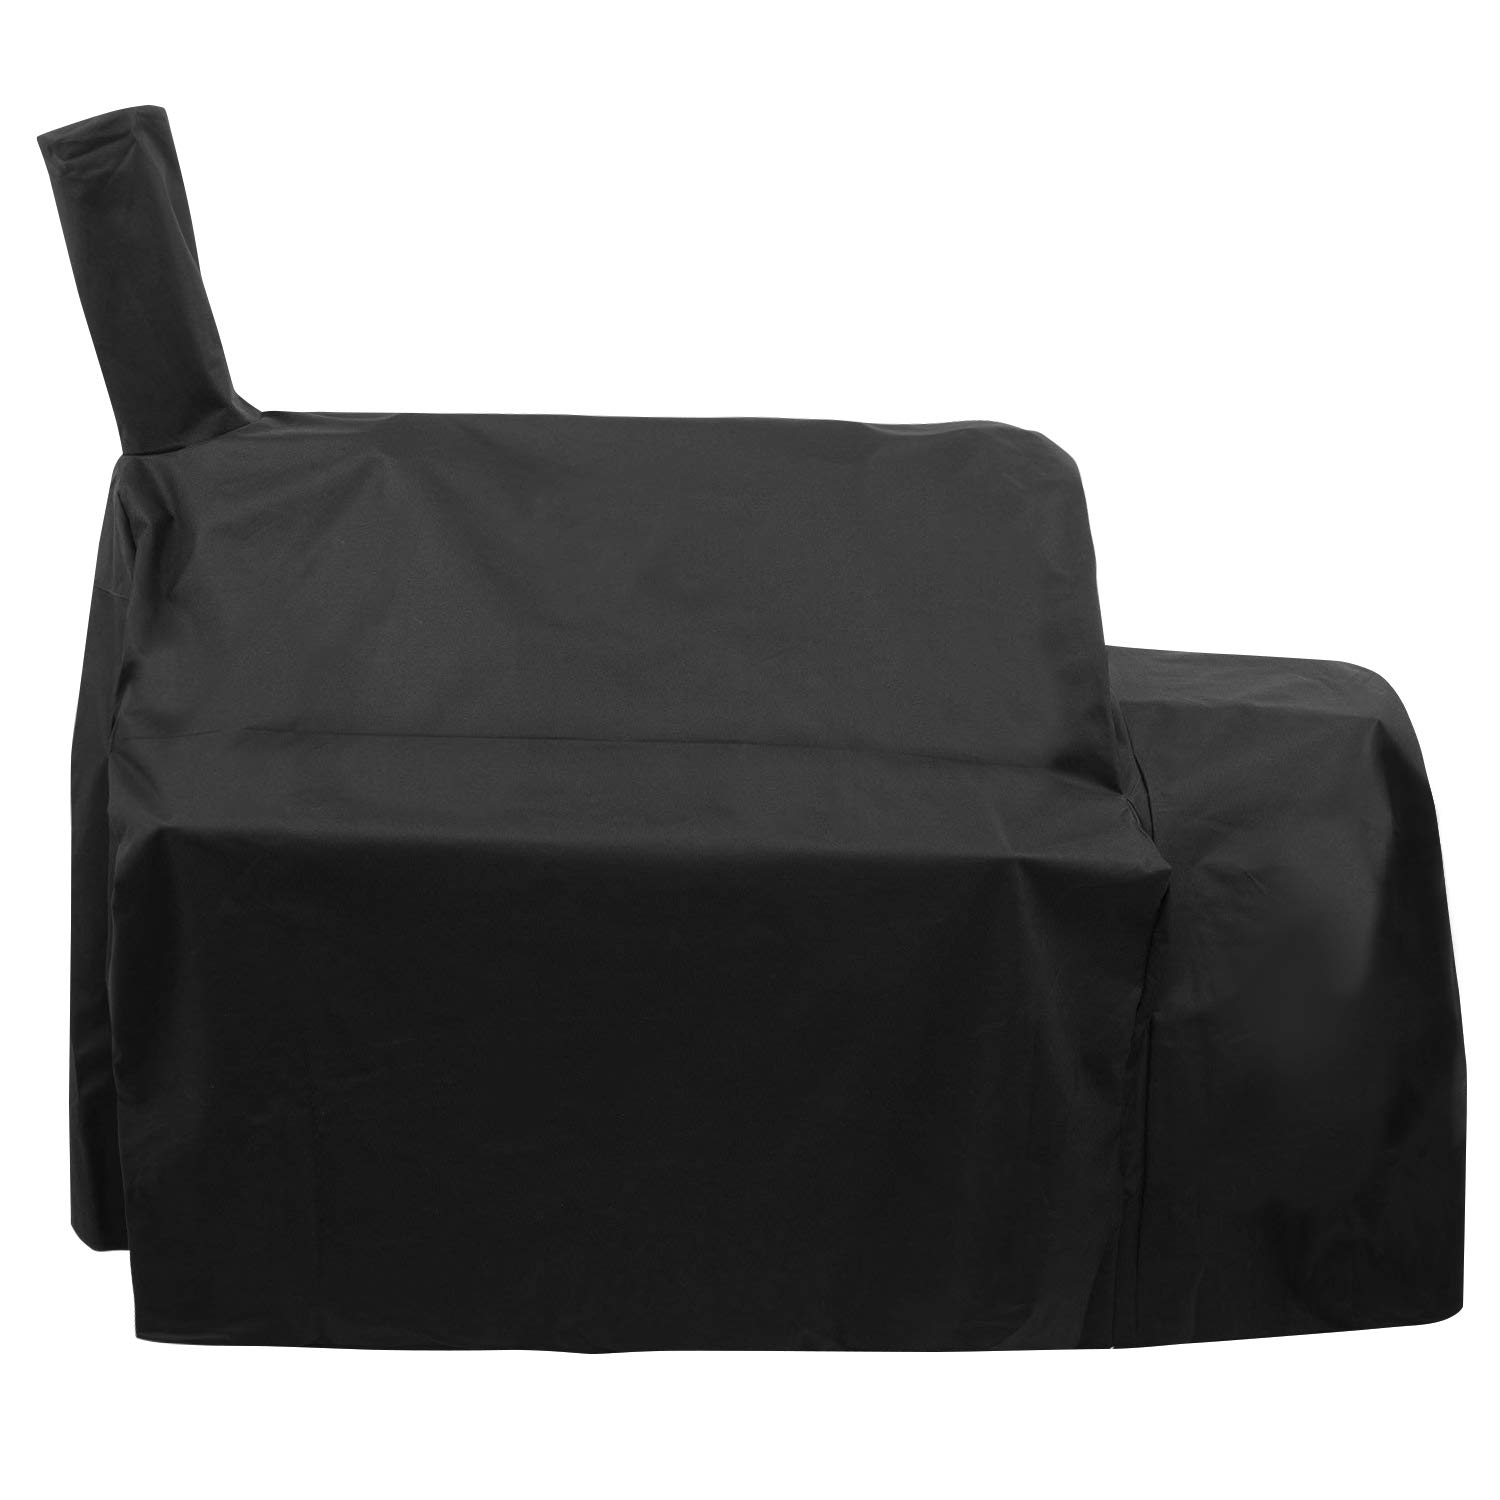 UNICOOK Heavy Duty Waterproof Grill Cover for Oklahoma Joe's Highland Smoker, Charcoal Offset Smoker Cover, Fade and UV Resistant, Fits Char-Broil, Dyna-Glo, Royal Gourmet, Char-Griller and More by UNICOOK